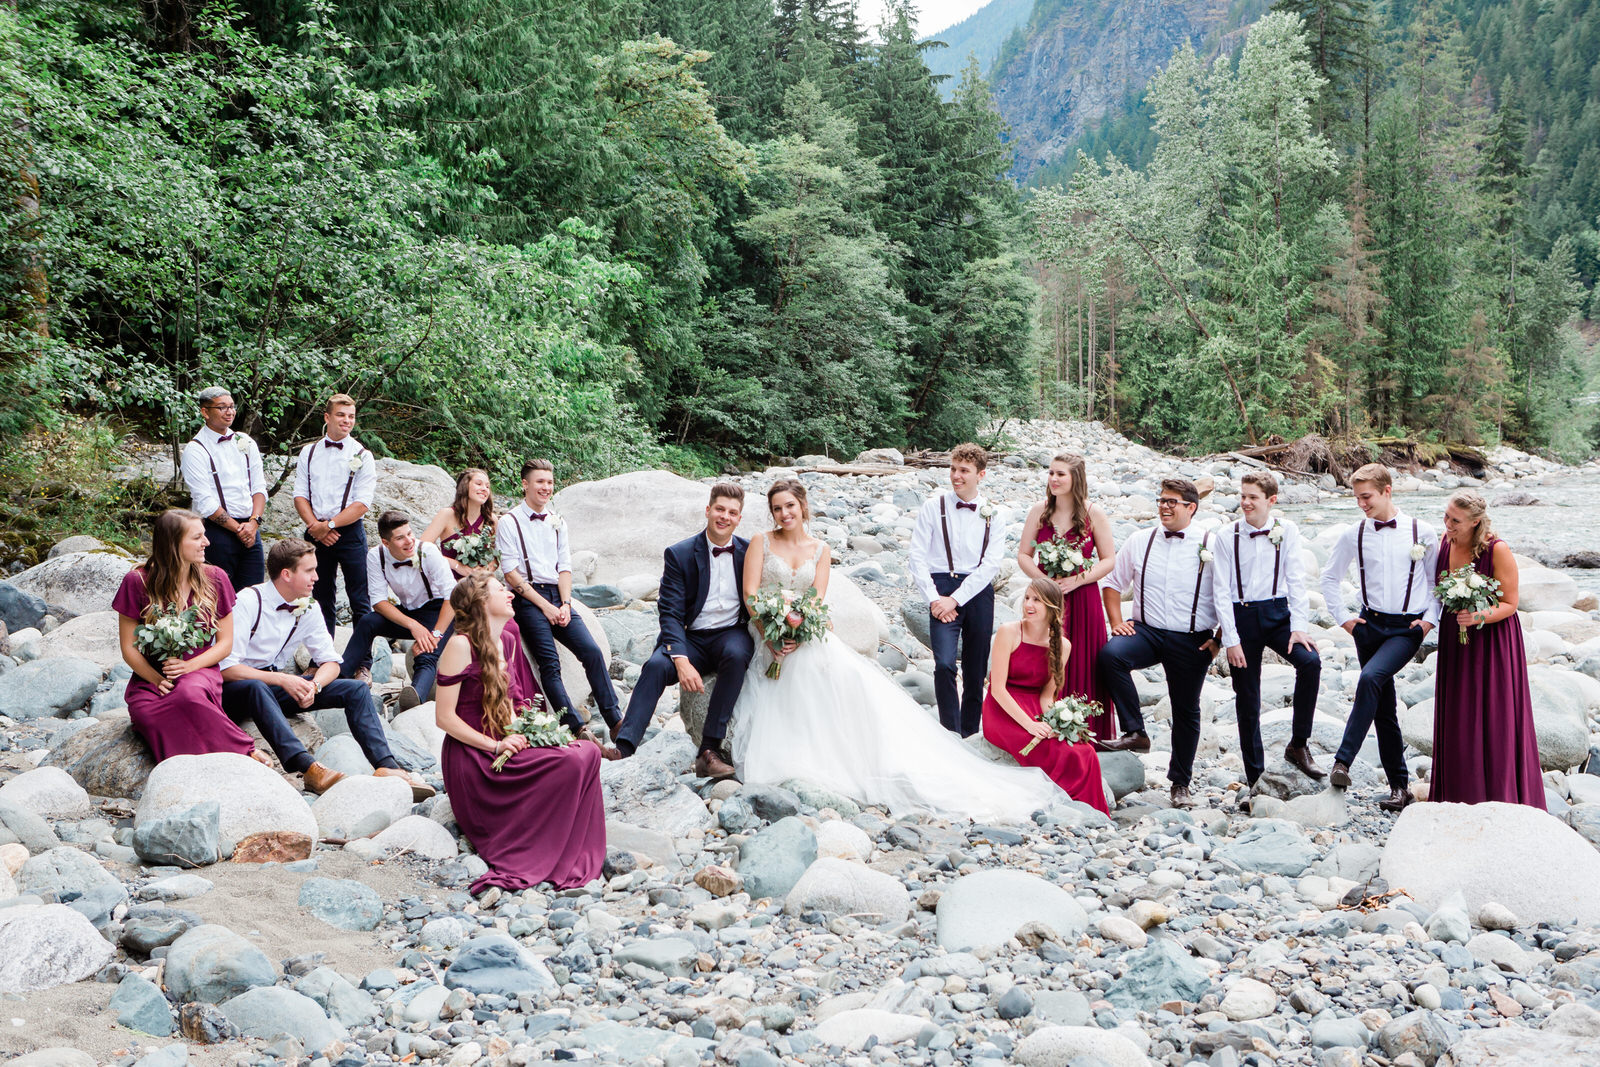 large bridal party poses on rocks by the river